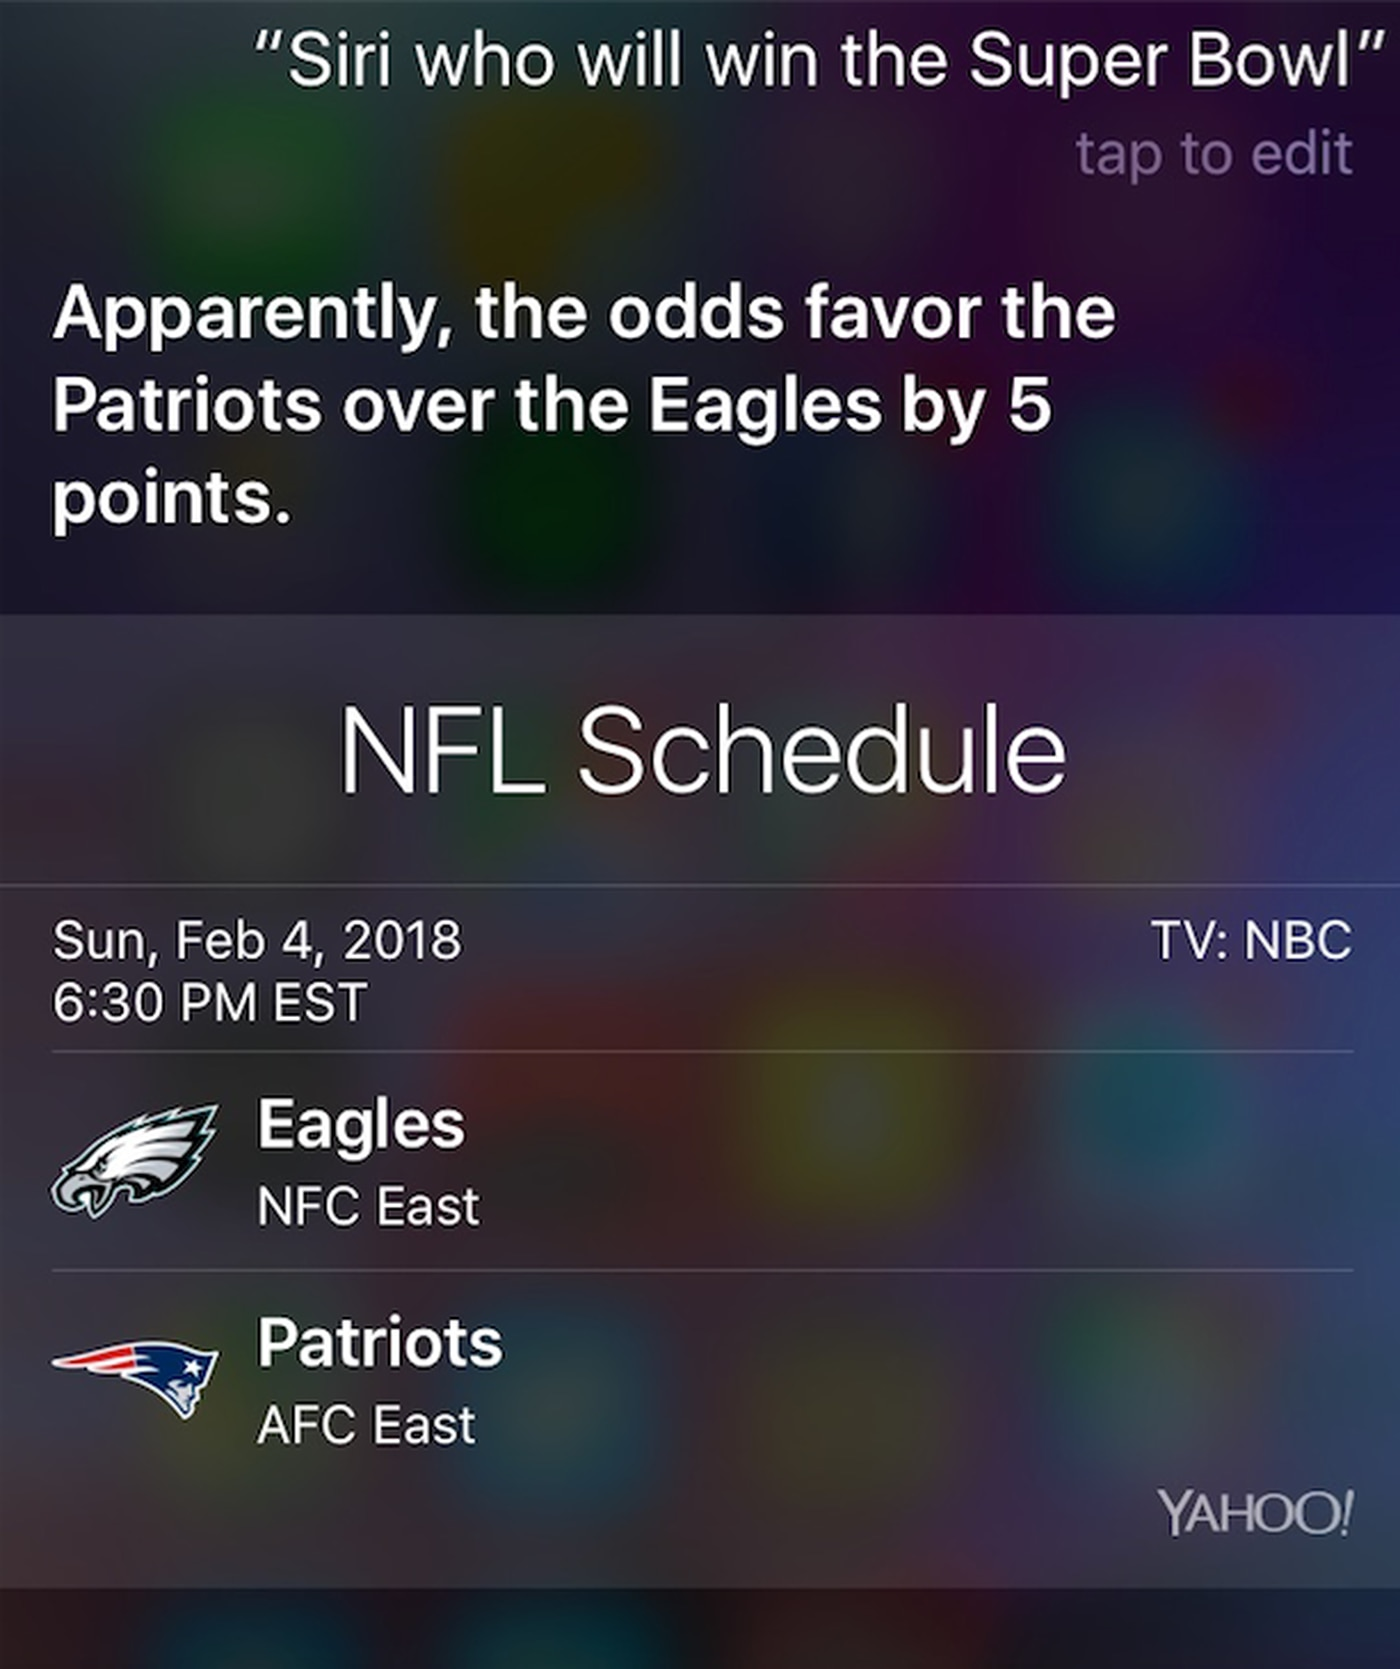 Amazon s Alexa jabs Patriots when asked who will win the Super Bowl 820a5468b